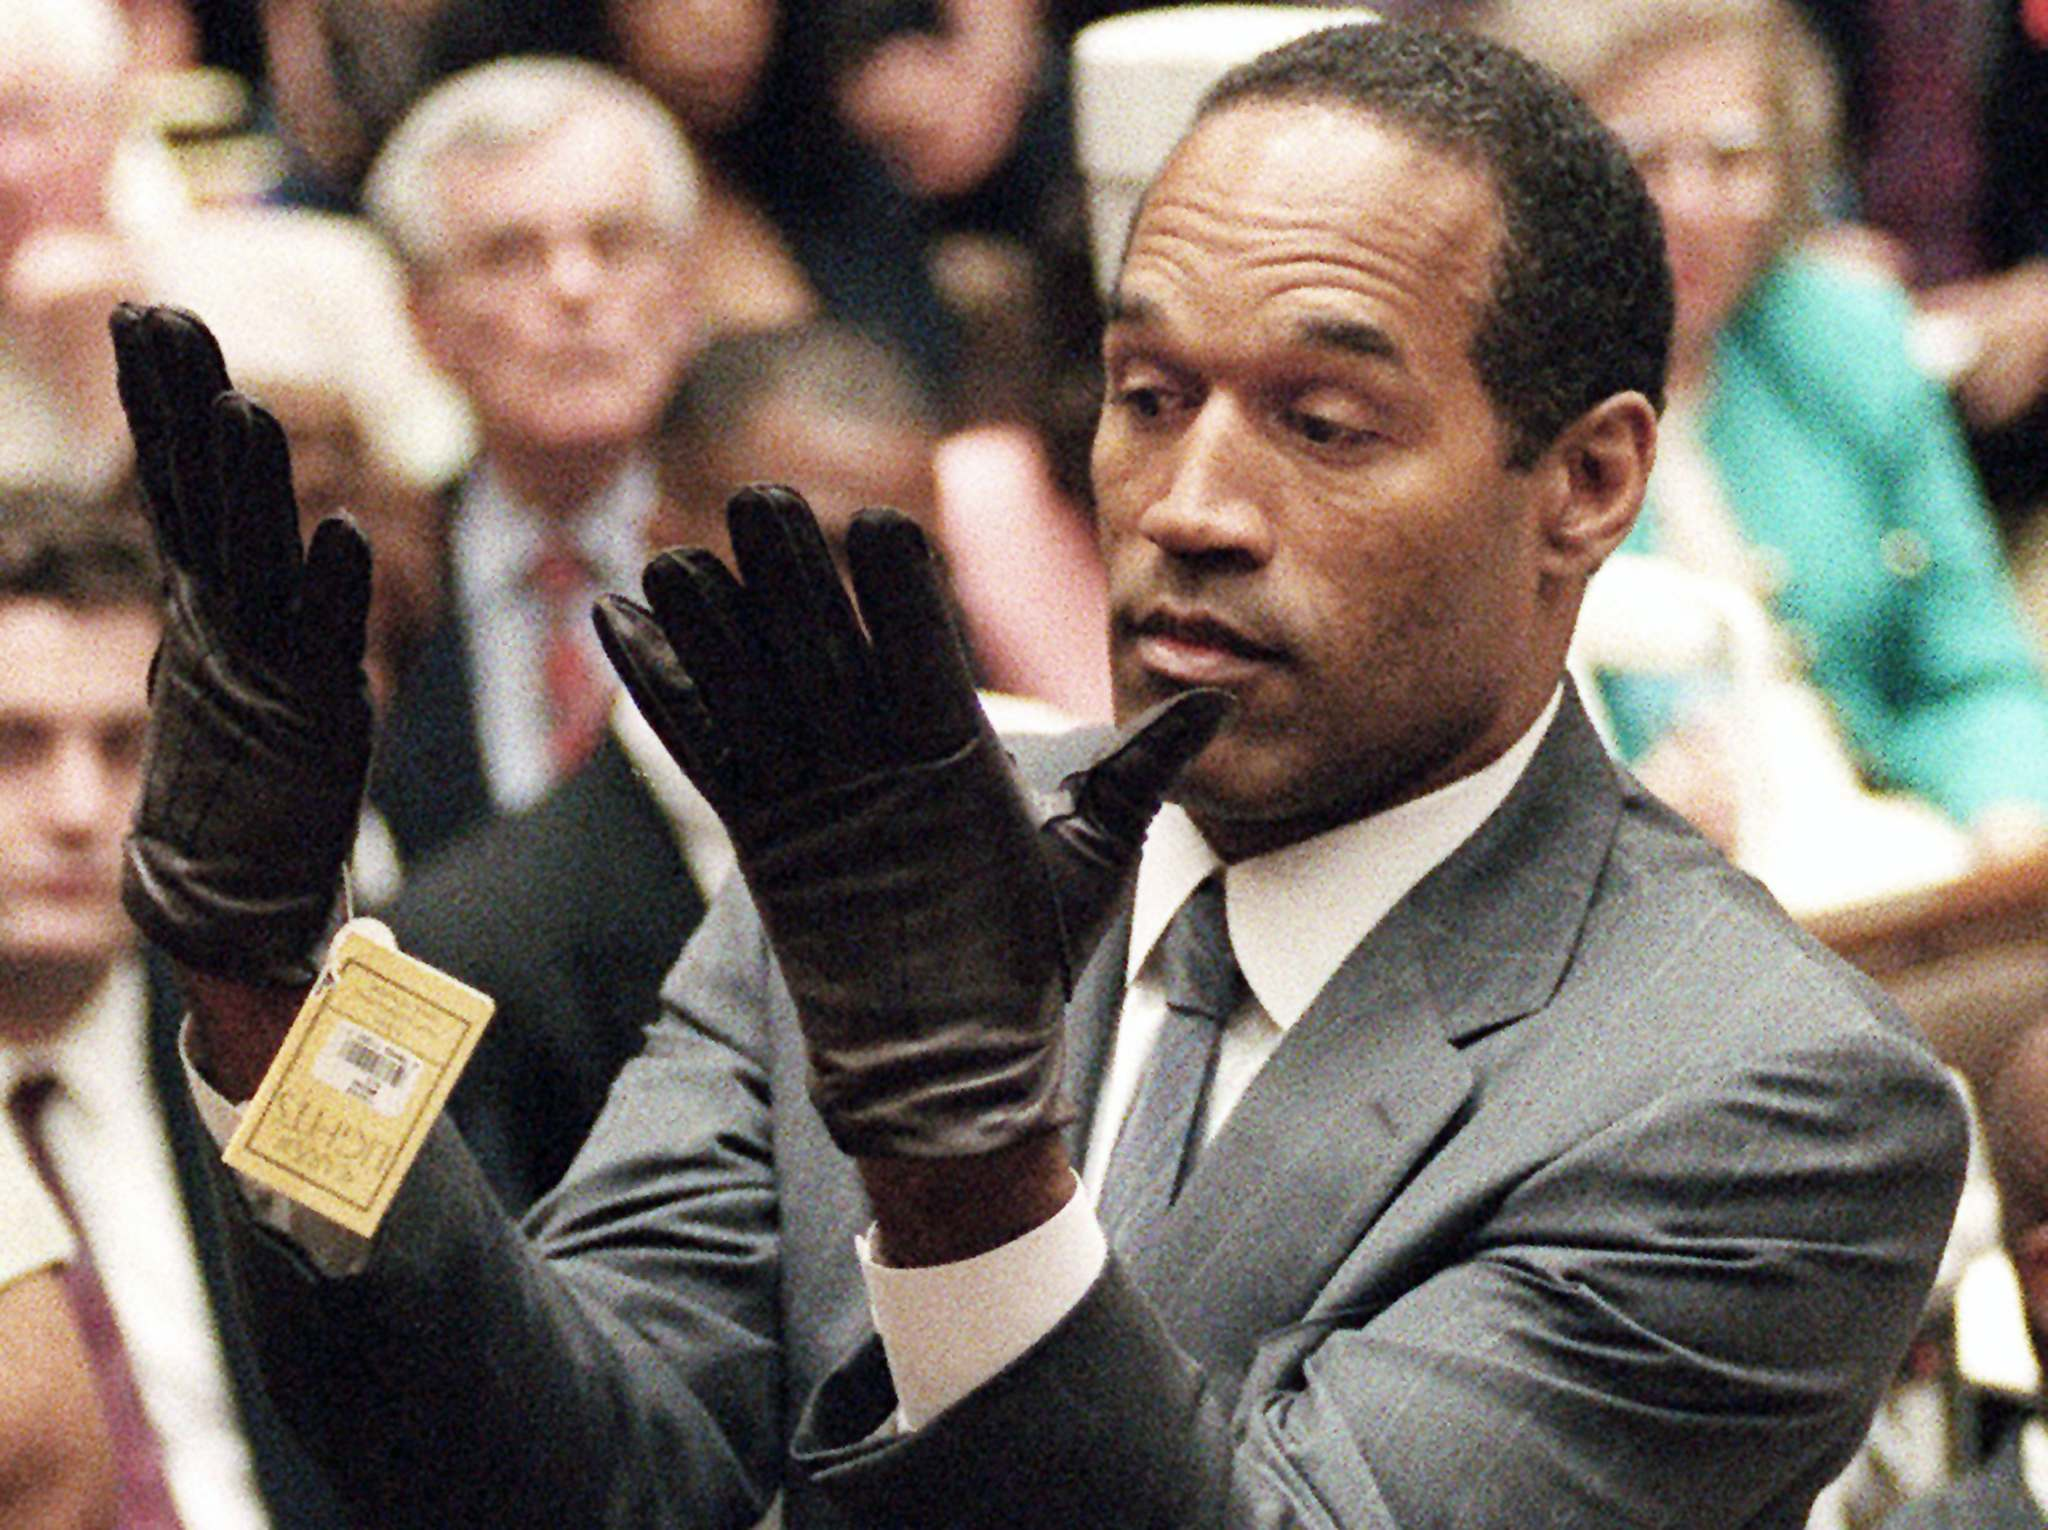 Cops Test Knife 'Found At OJ Simpson Estate'